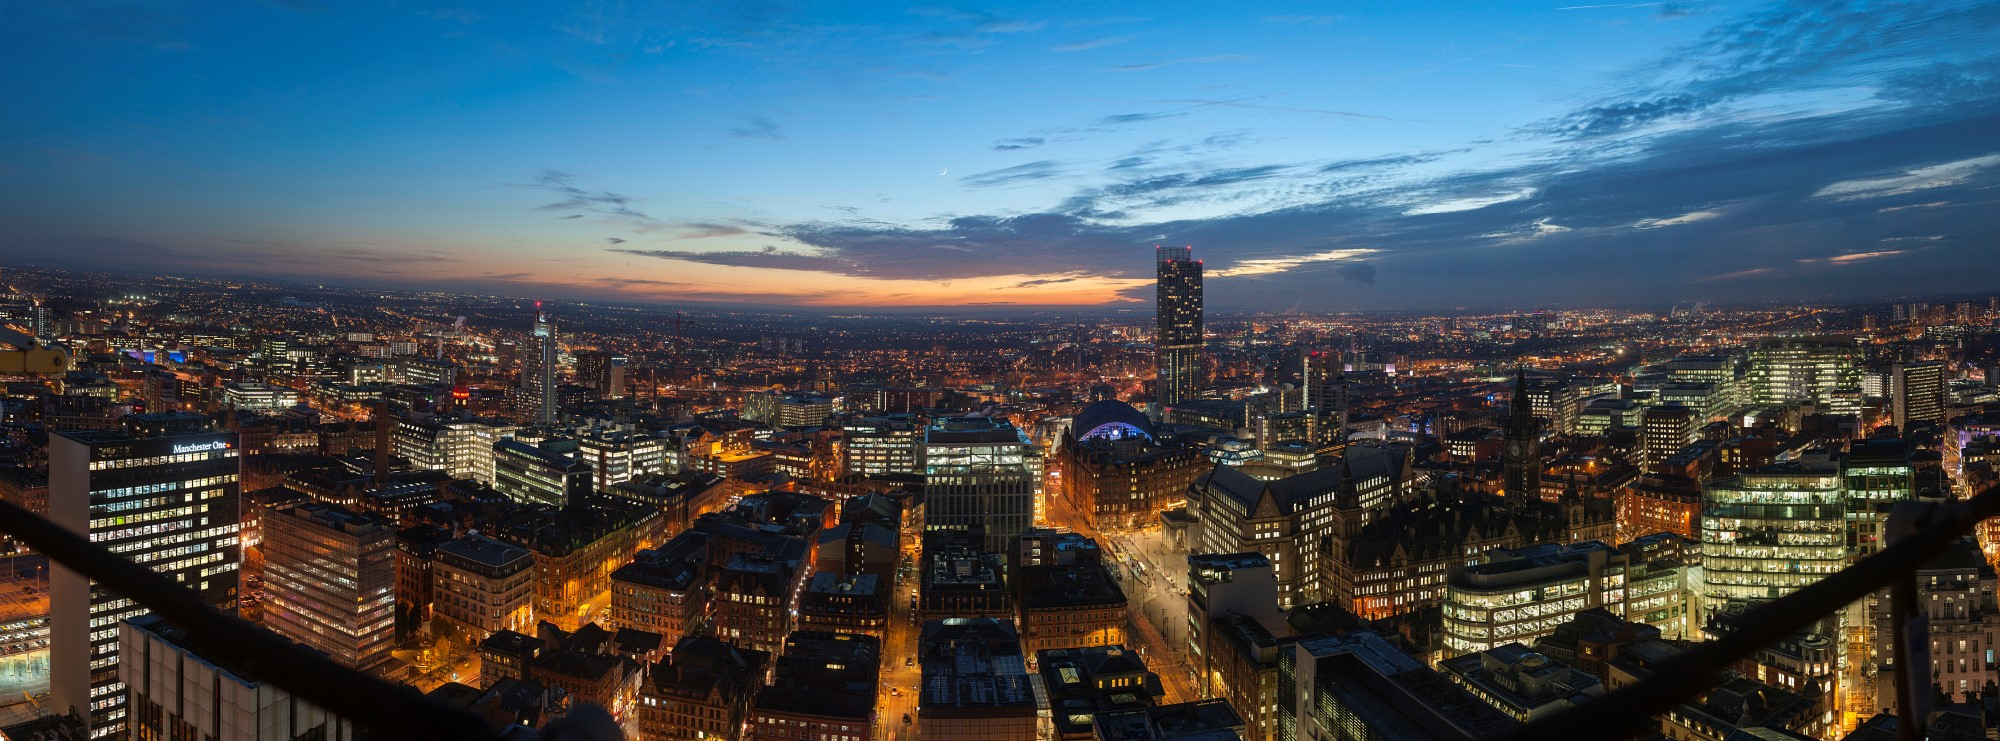 Manchester - From the City Tower by Andrew Brooks